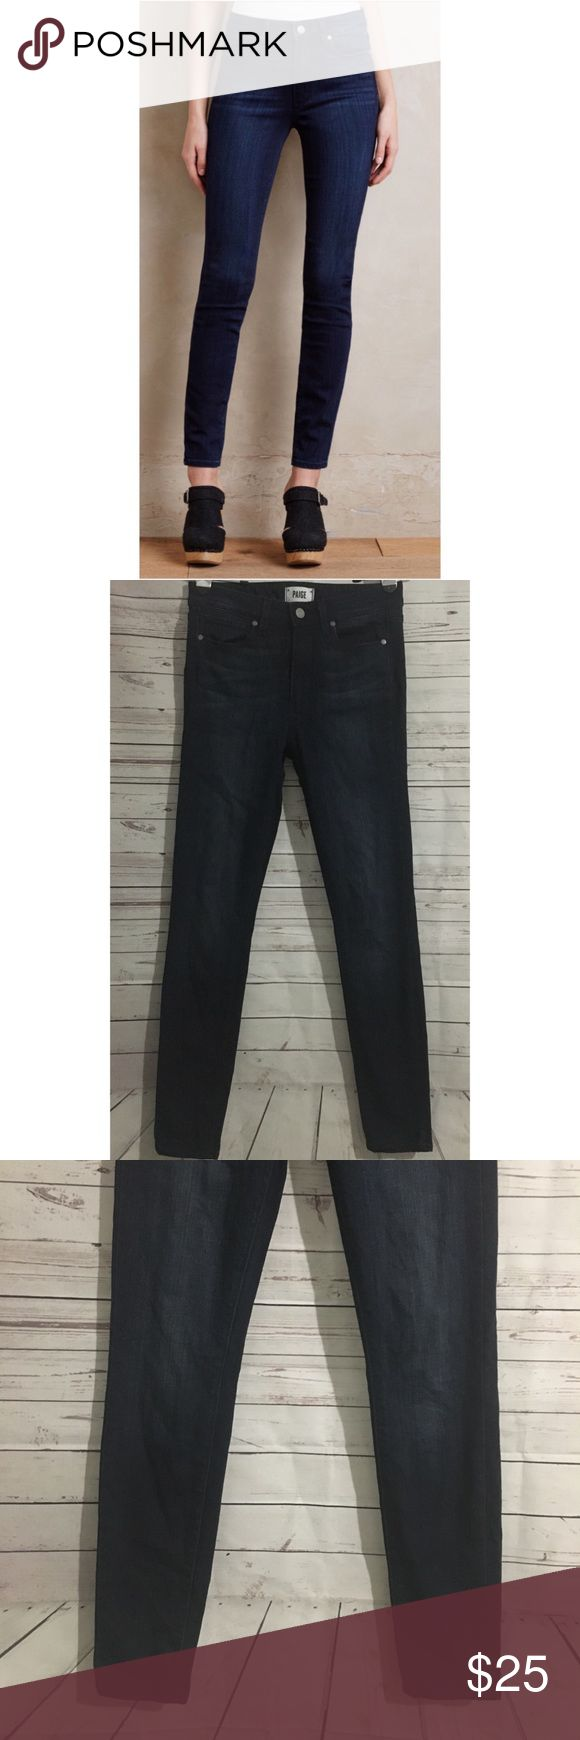 Paige Hoxton Ultra Skinny Jeans Great used condition dark wash jeans with whiskering. Smoke free/pet friendly home. 53% rayon/23% Cotton/22% polyester/1% spandex.   Approximate Flat Measurements   Waist: 14 in Inseam: 29 in Outseam: 38 in Leg opening: 5 in Rise: 10 in Hips: 13 1/2 in PAIGE Jeans Skinny